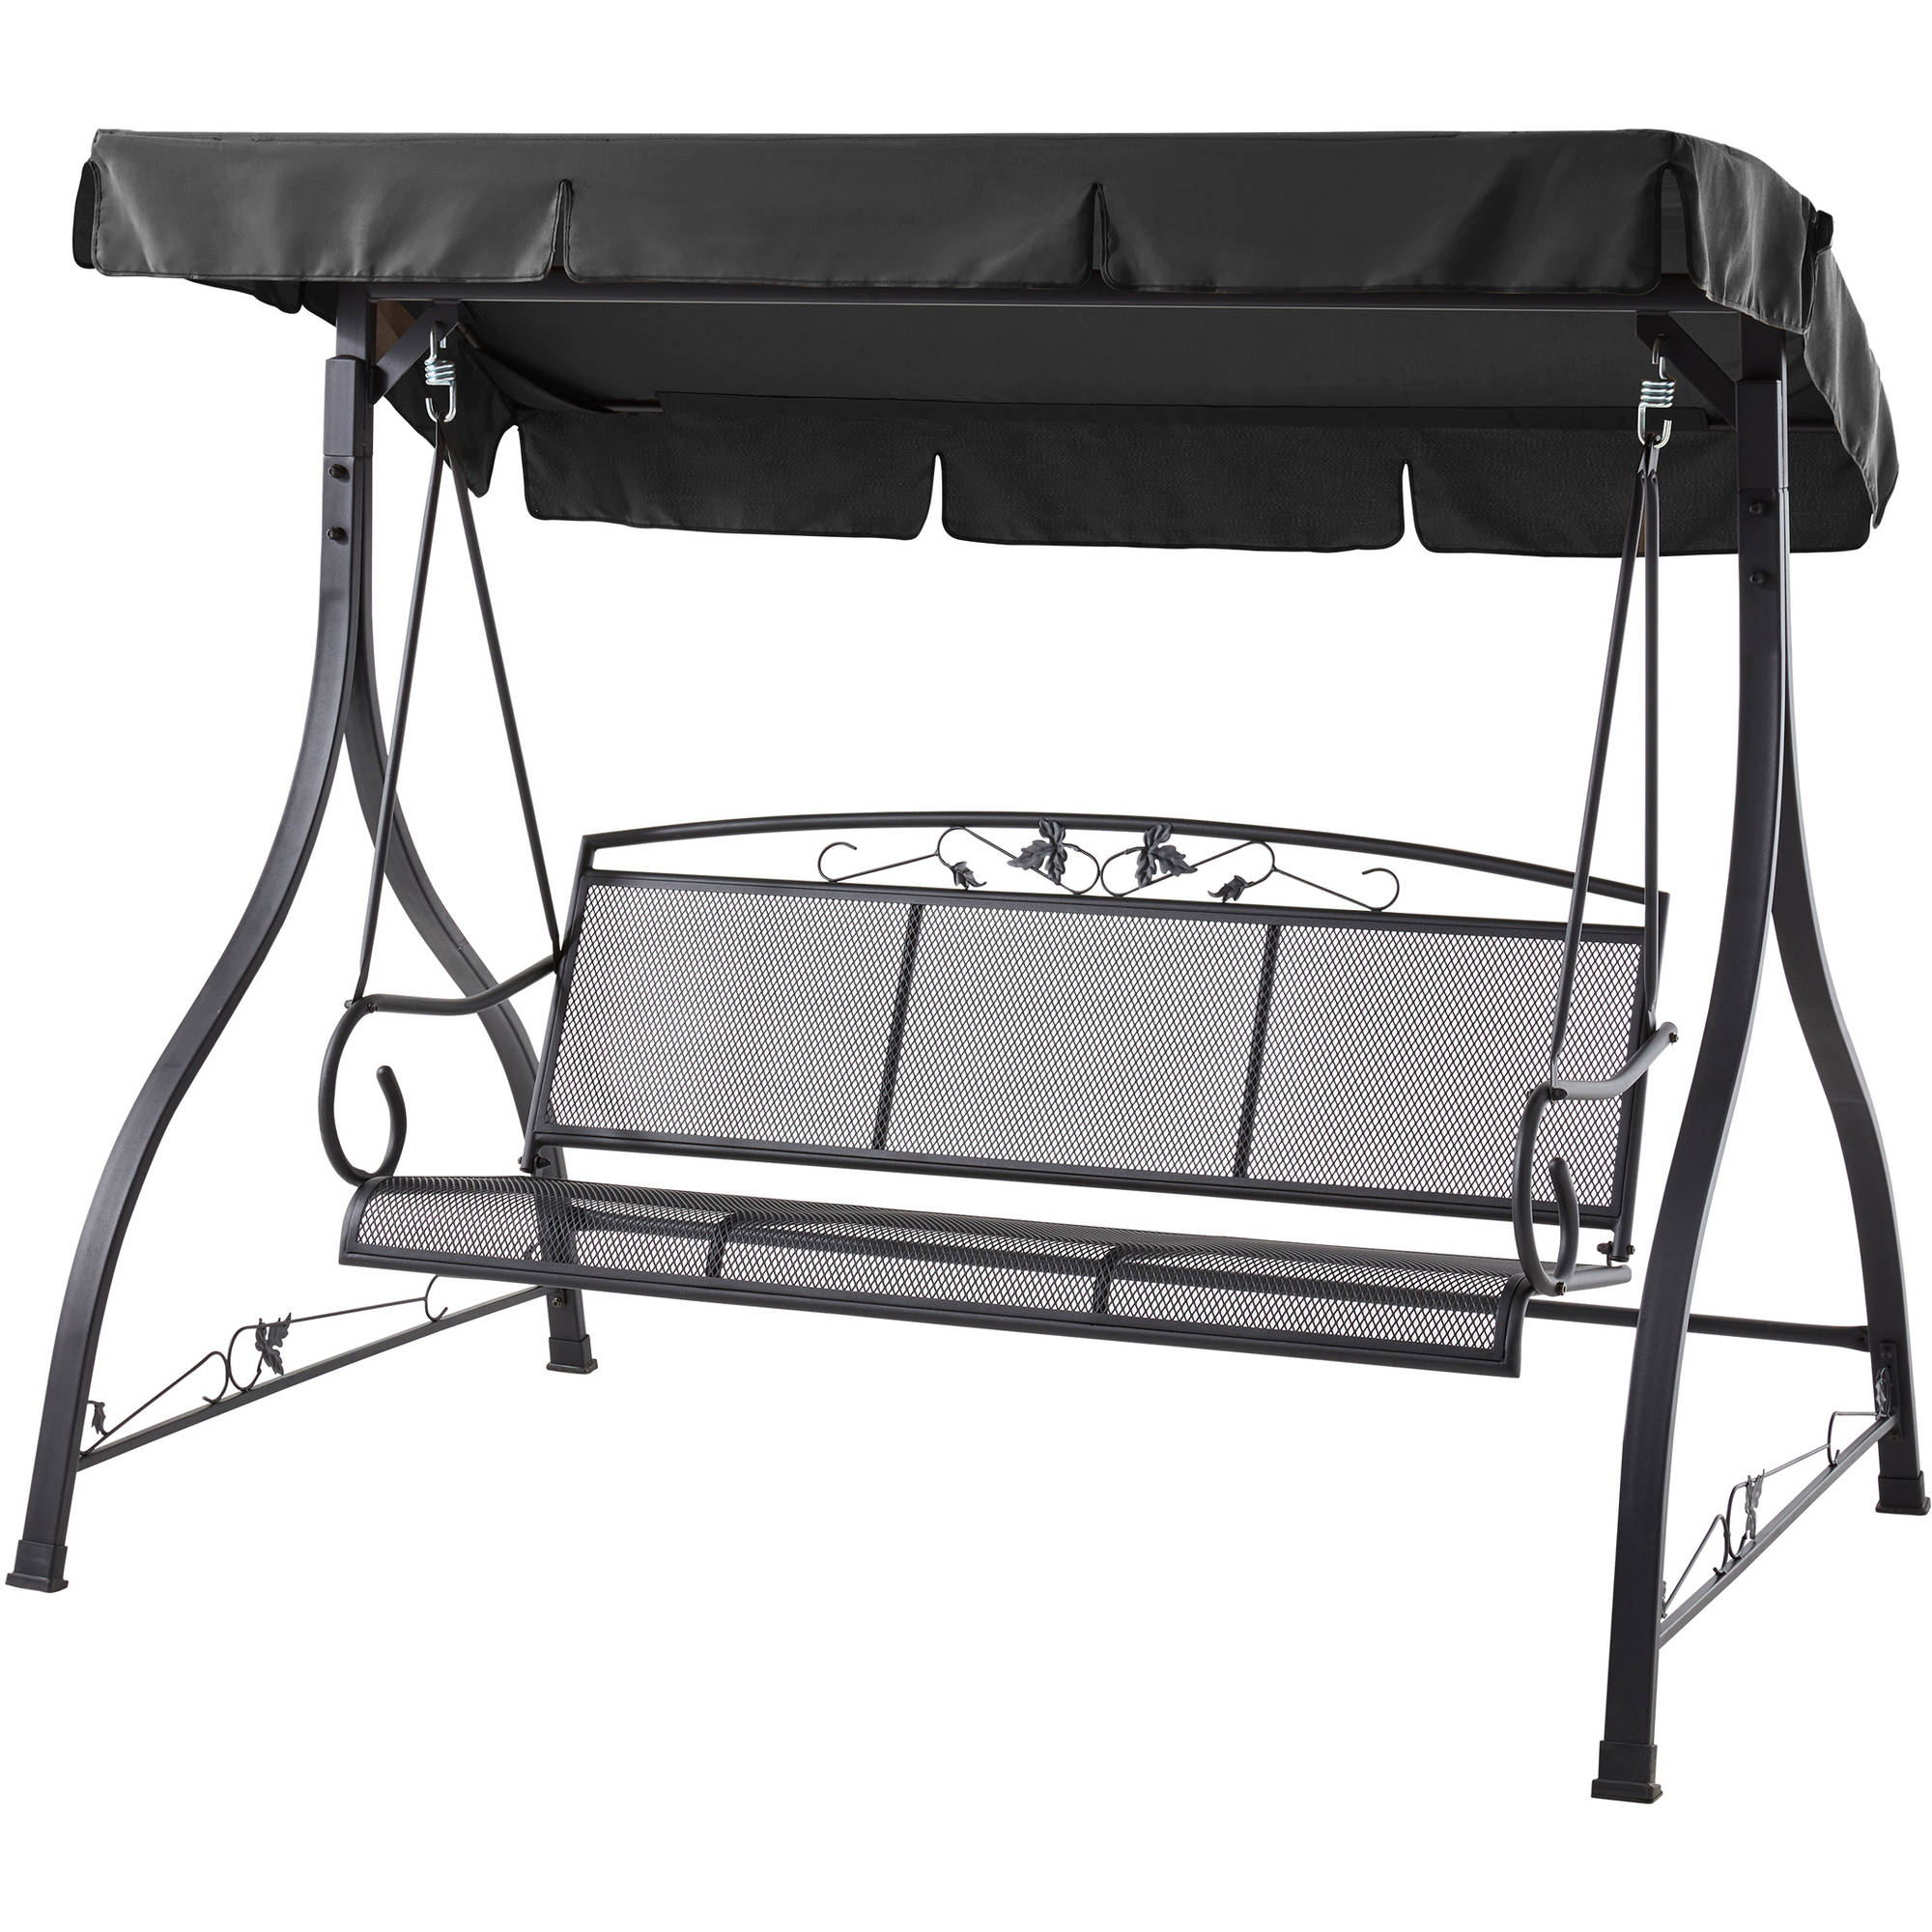 Replacement Canopy For Jefferson 3 Person Swing Beige - Jcpenney Patio Furniture